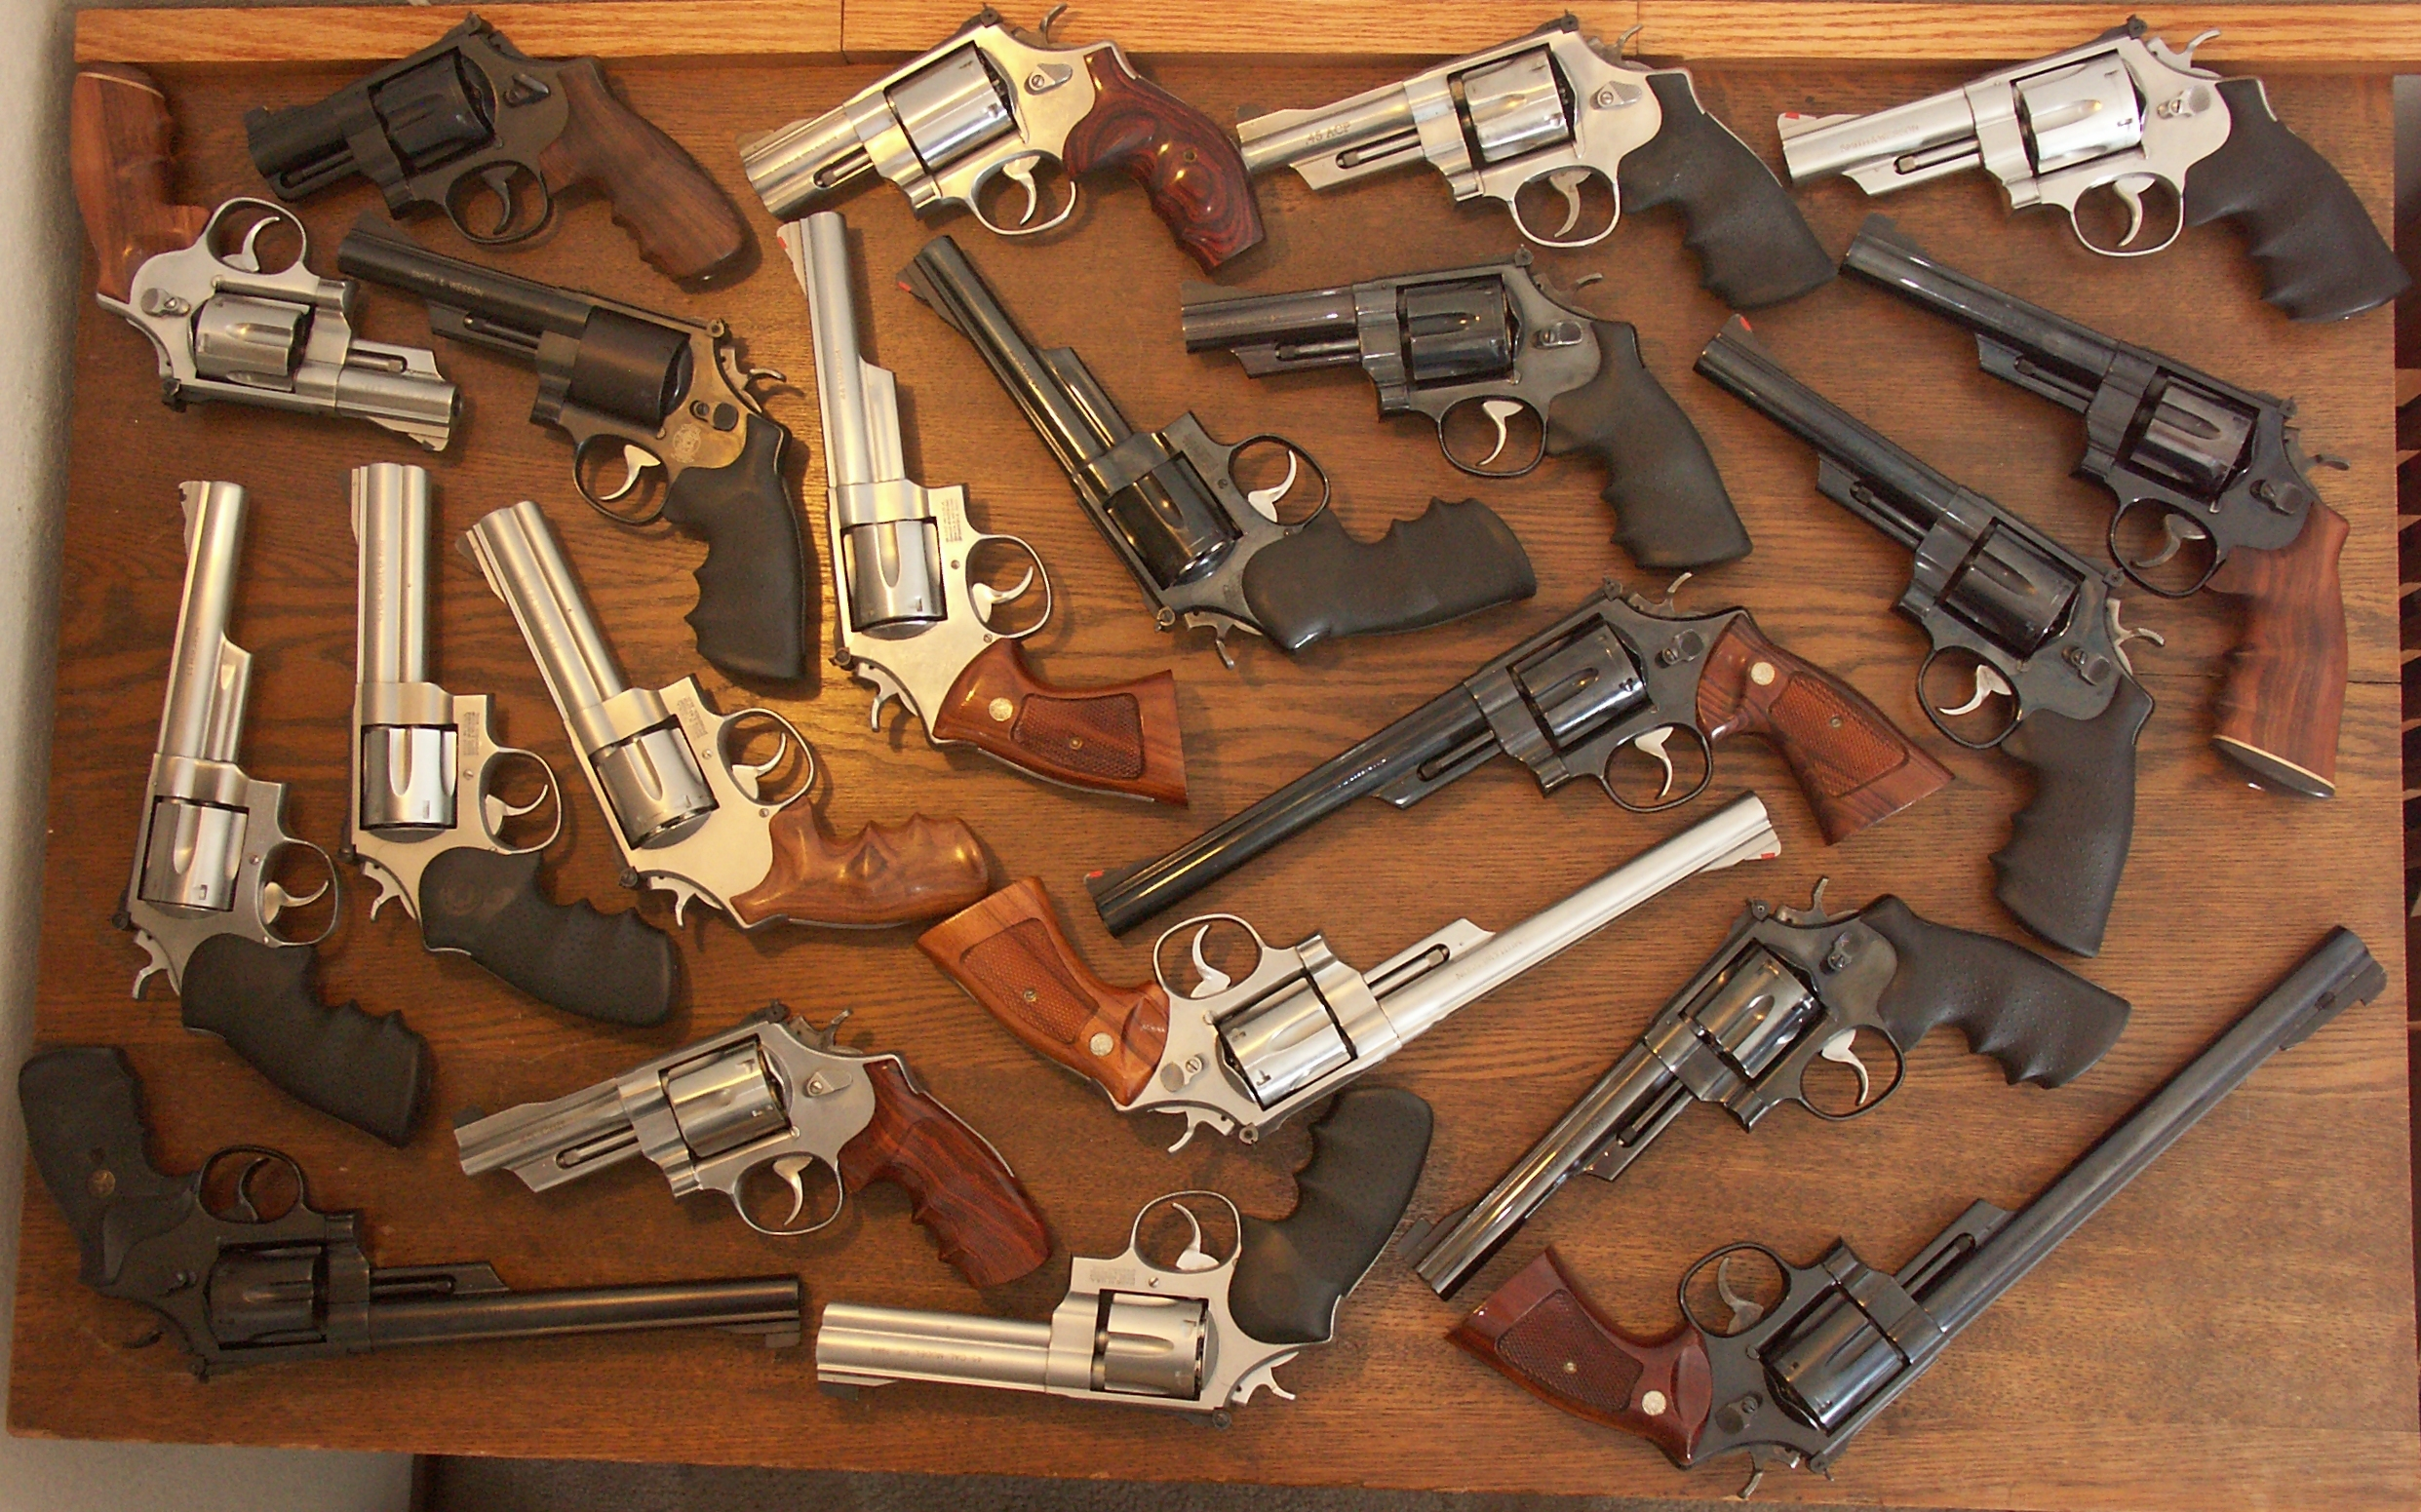 Guns revolvers weapons Smith HD Wallpaper